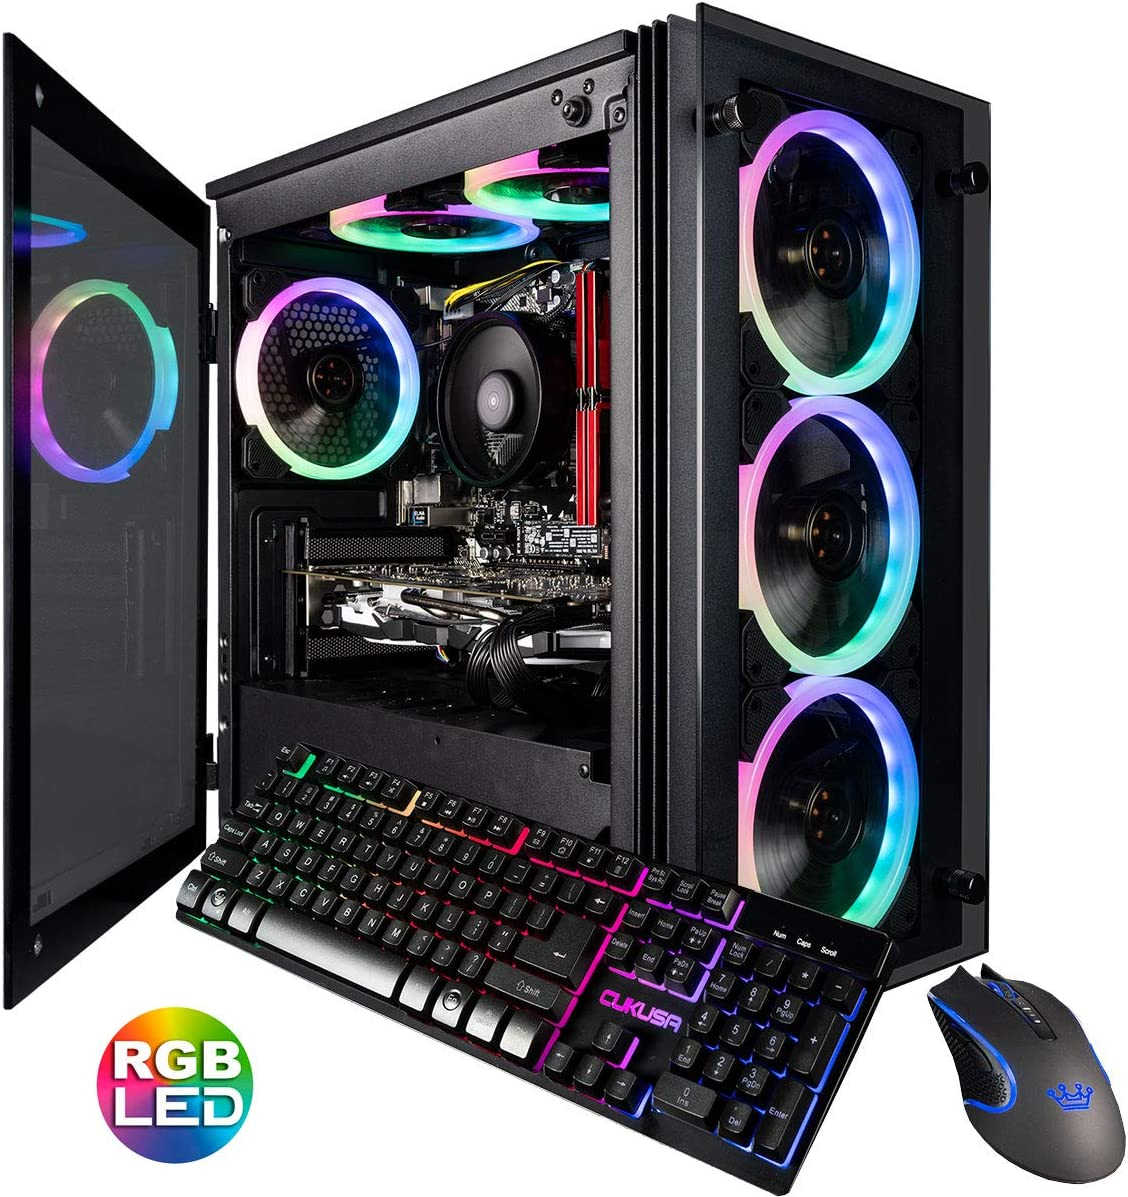 CUK Stratos Micro Gaming Desktop (Intel i7-9700F, 32GB DDR4 RAM, 512GB NVMe SSD + 1TB HDD, NVIDIA GeForce RTX 2060 8GB, 600W Gold PSU, Windows 10 Home) Gamer PC Computer